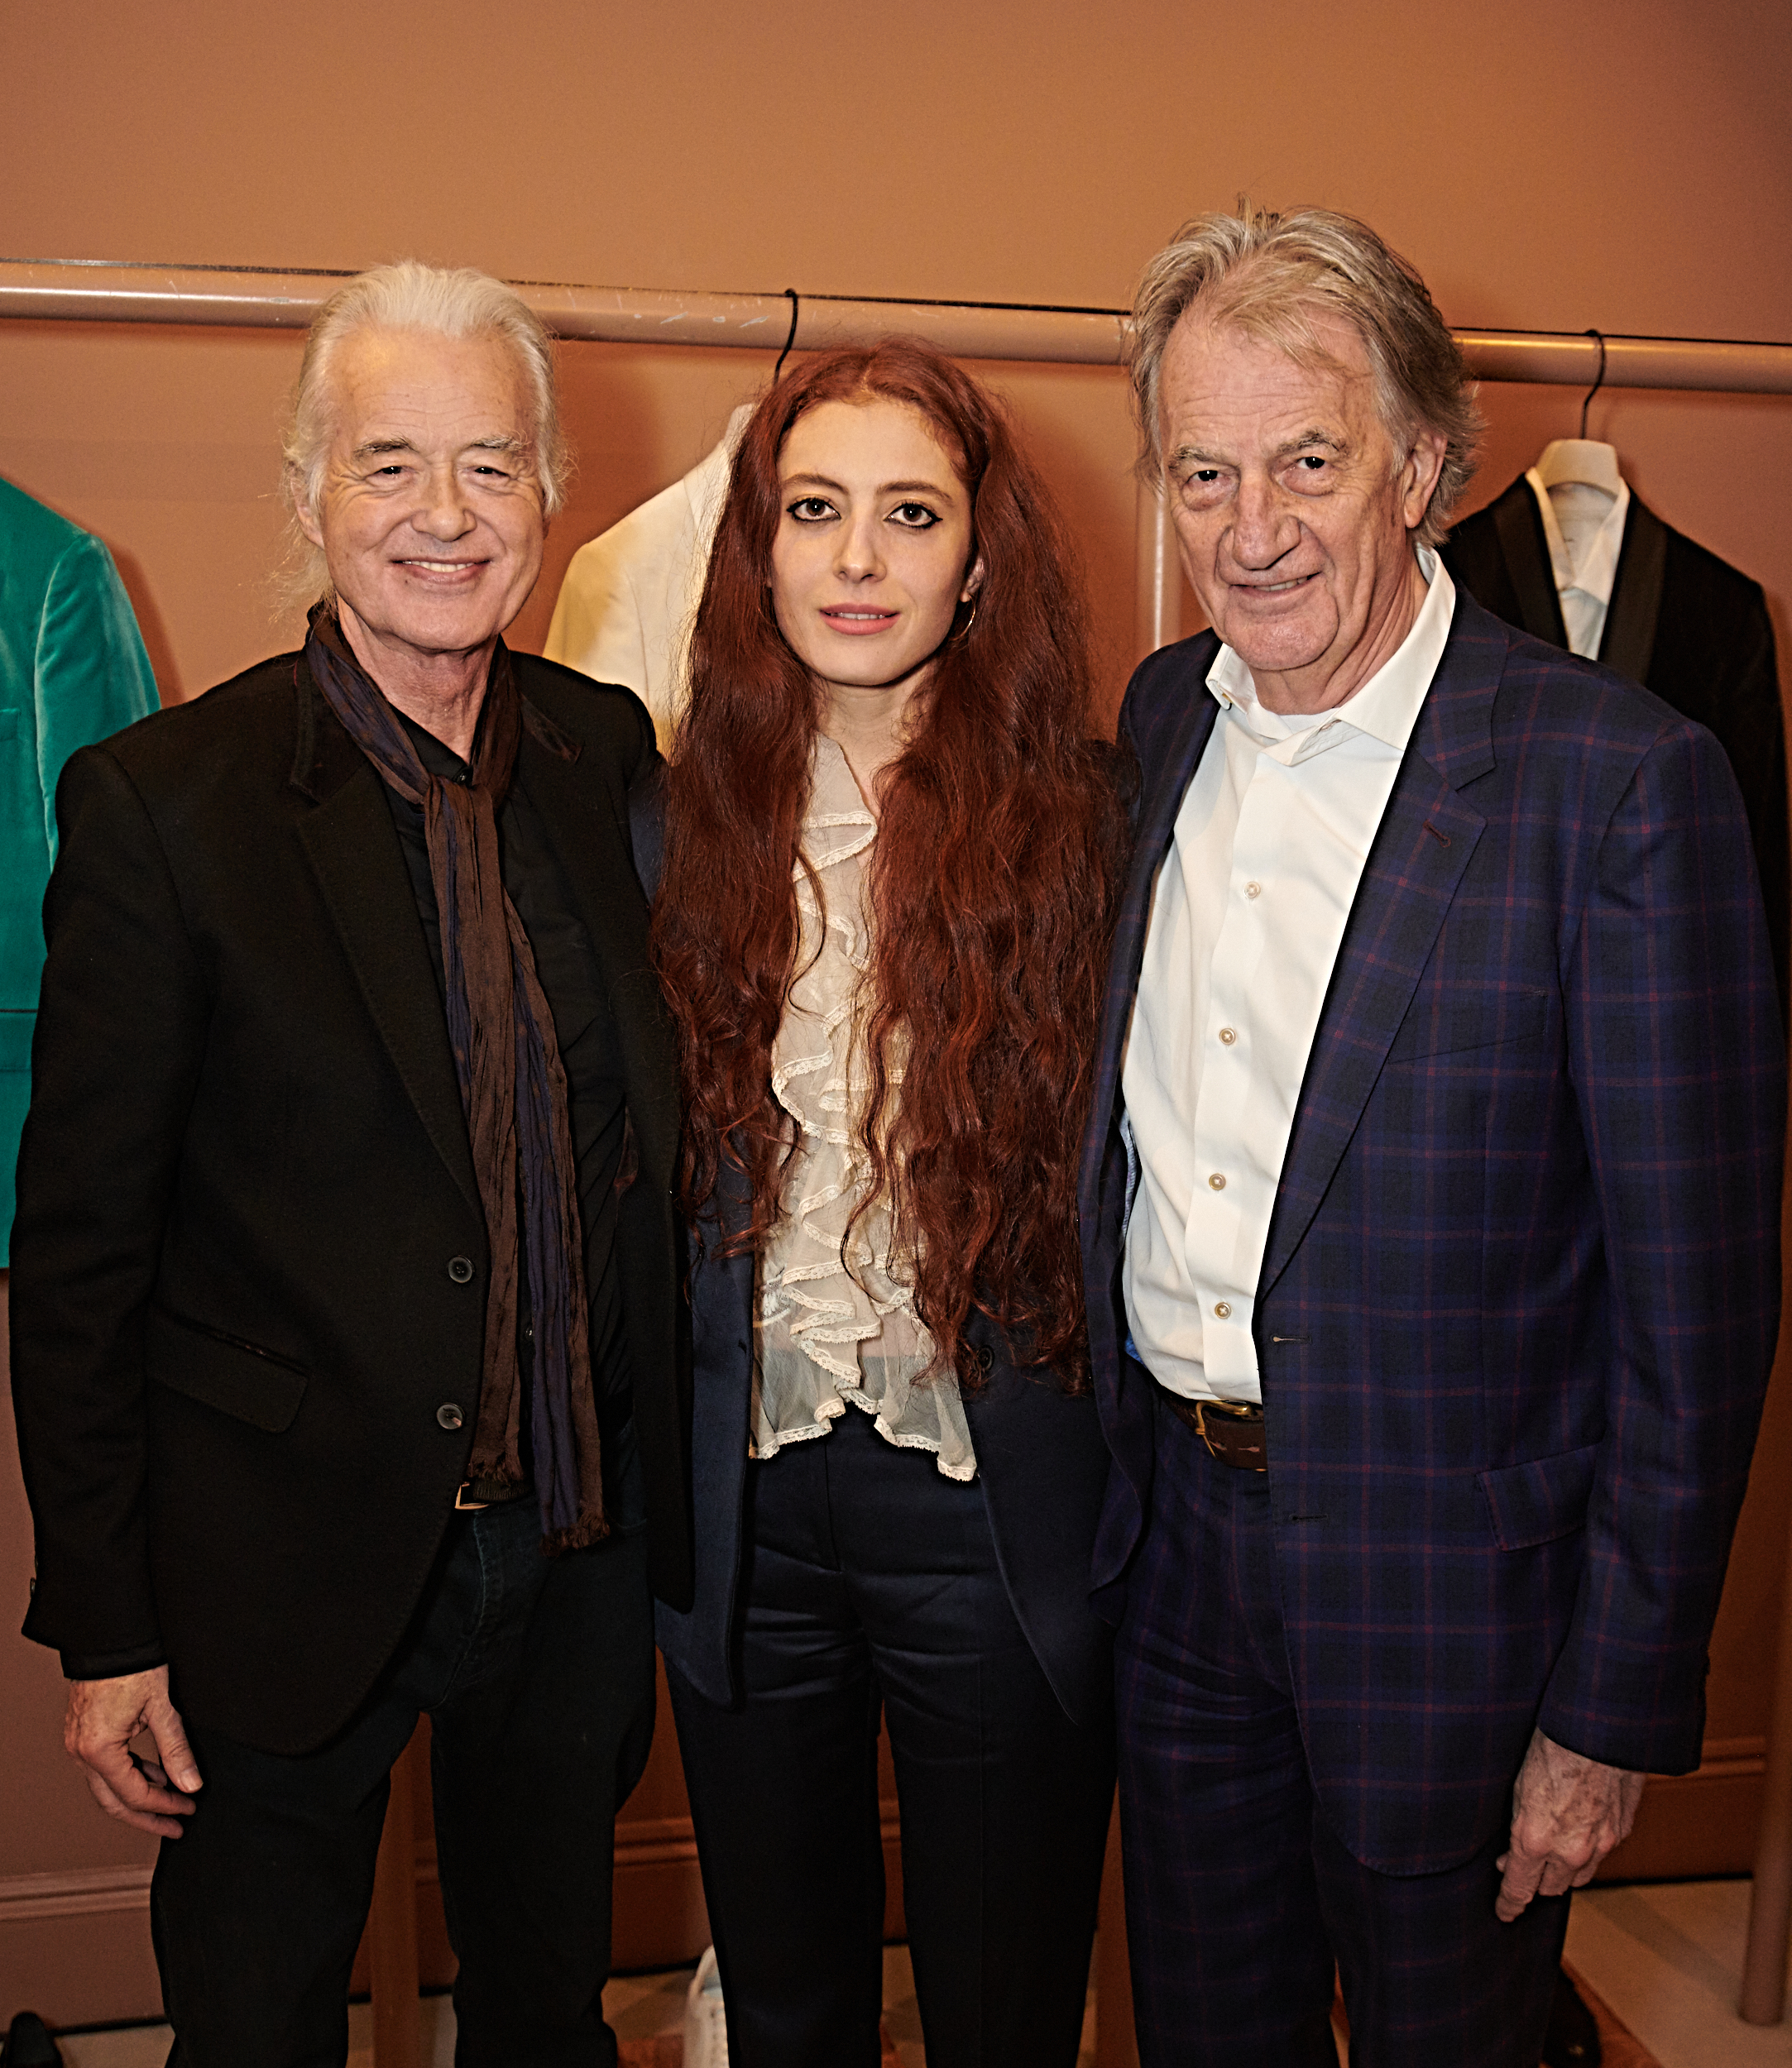 Jimmy Page, Scarlett Sabet, and Sir Paul Smith at the Matches townhouse in London.